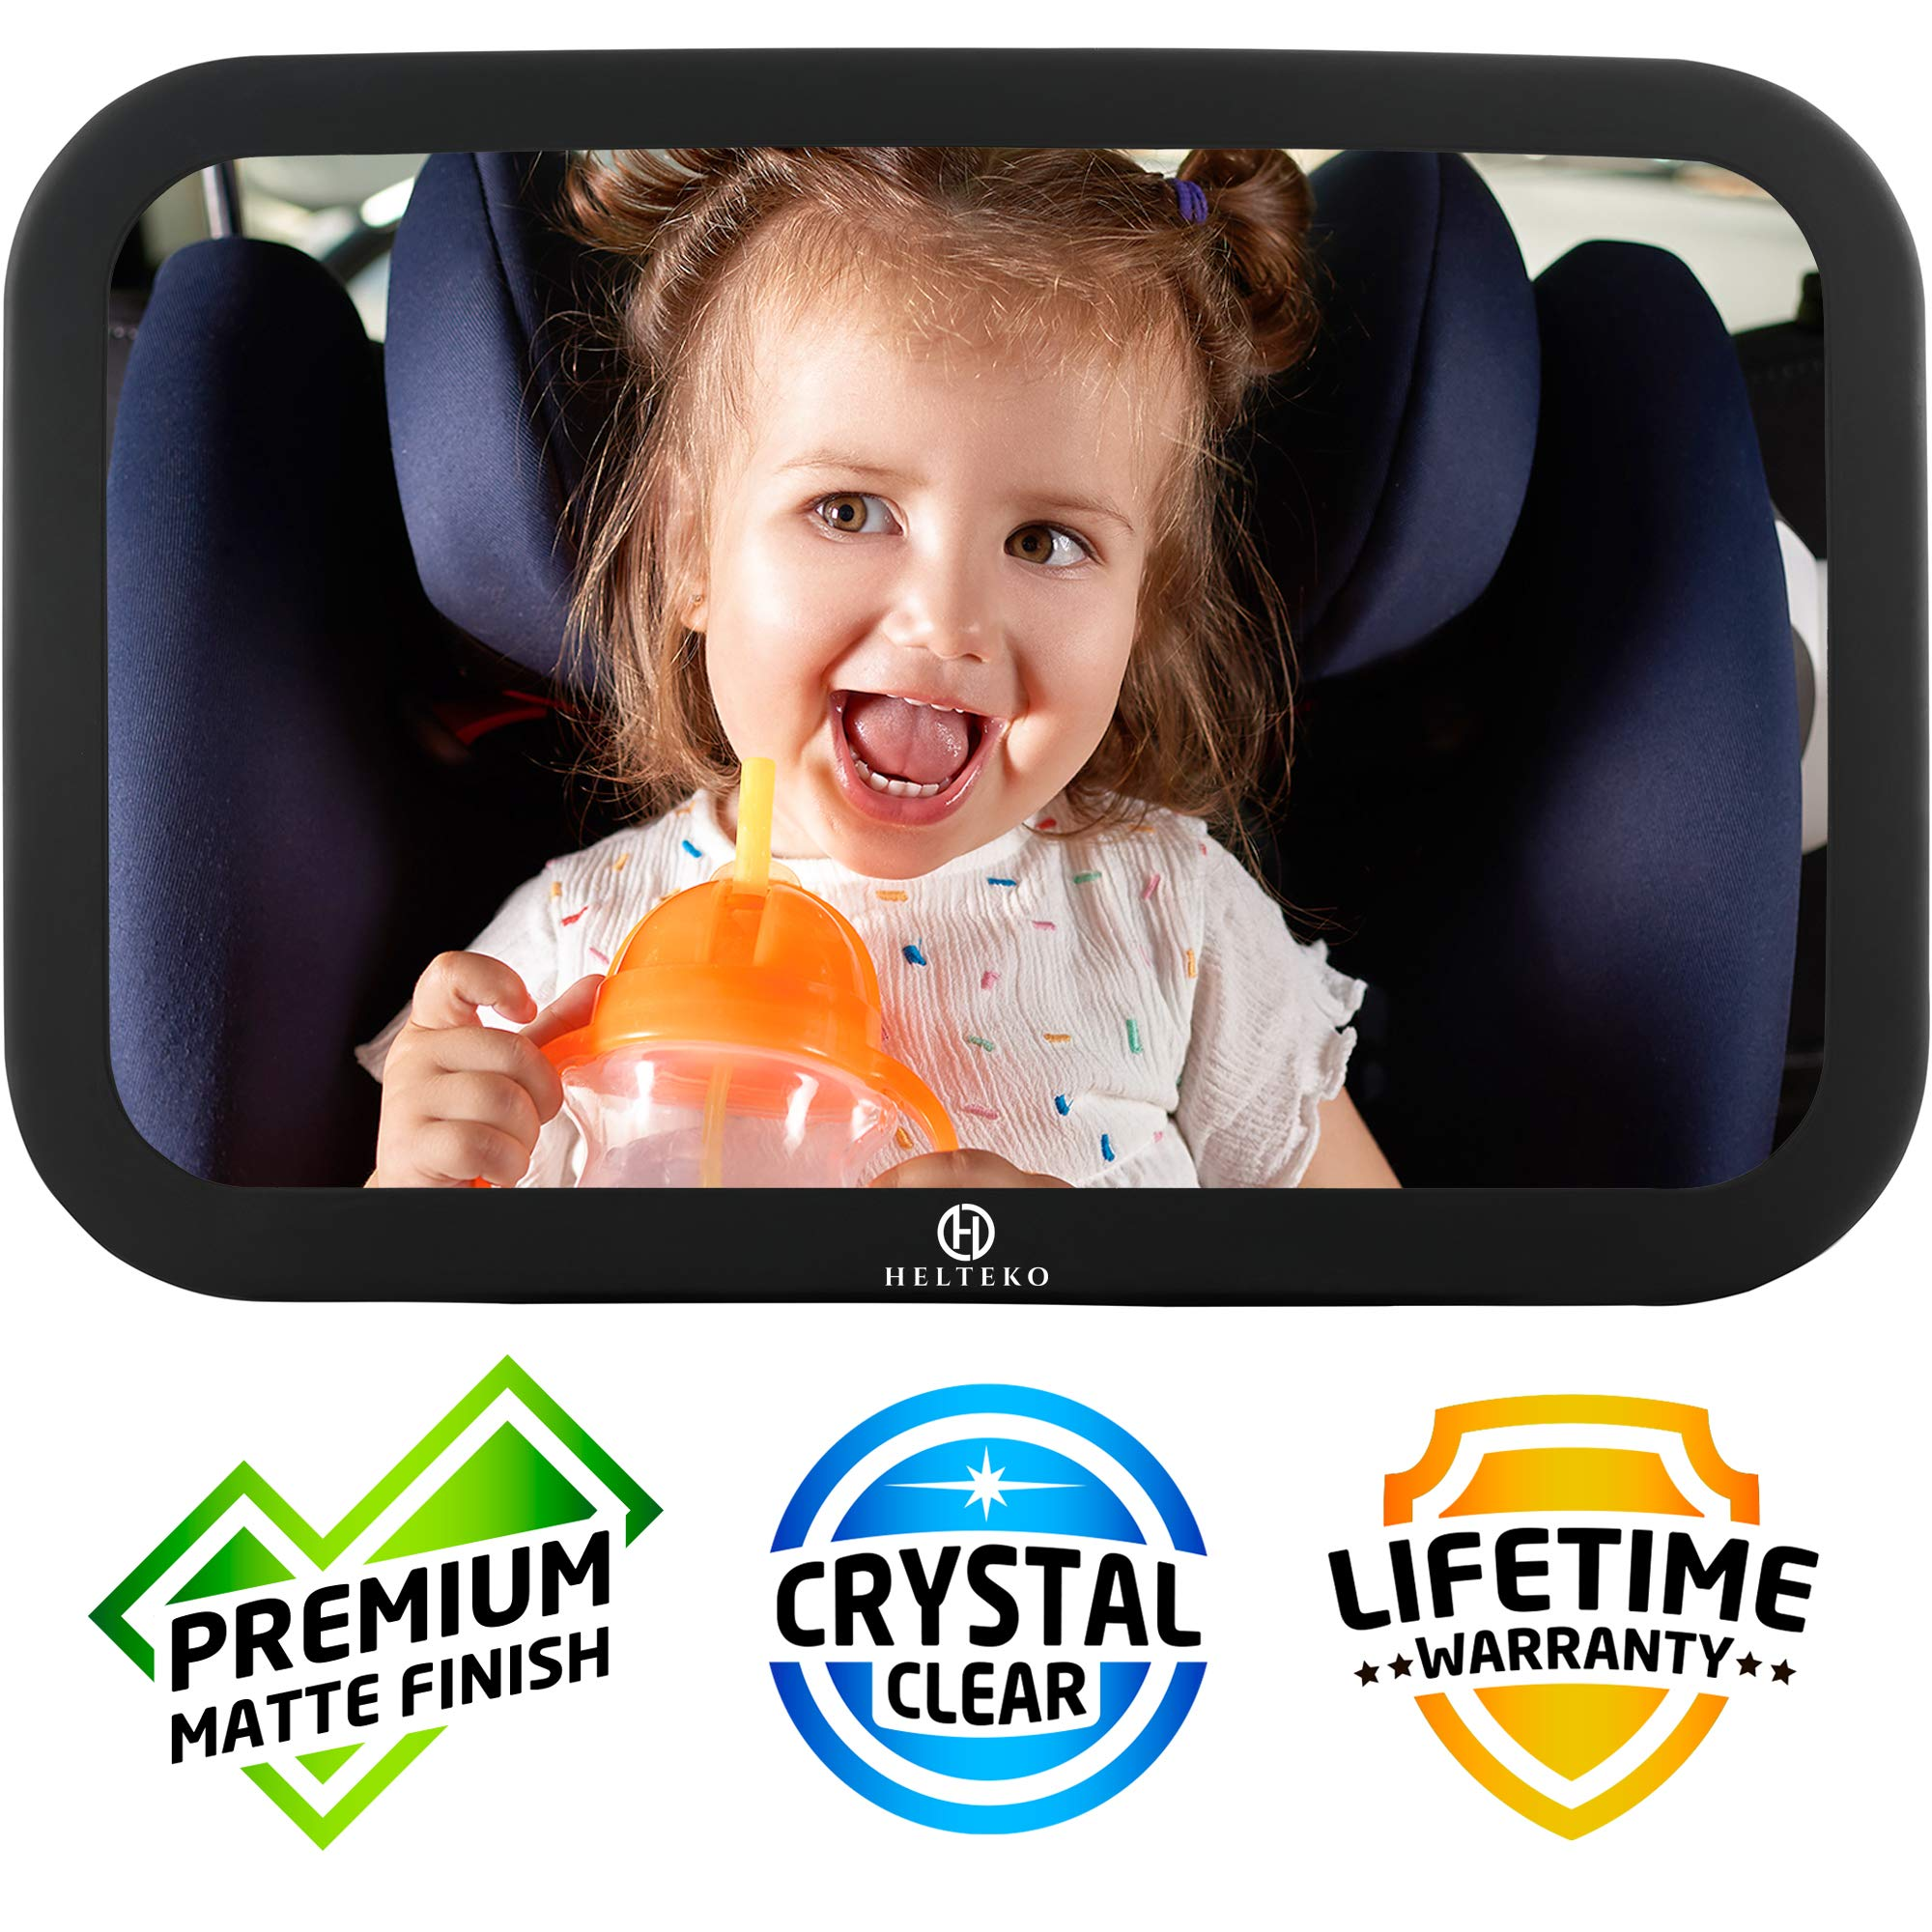 Helteko Baby Car Mirror - View of Infant in Rear Facing Car Seat - Stable and Shatterproof Backseat Mirror for Child with Wide Crystal Clear View - Easy Adjustable 360° - Crash Tested Secure by H Helteko